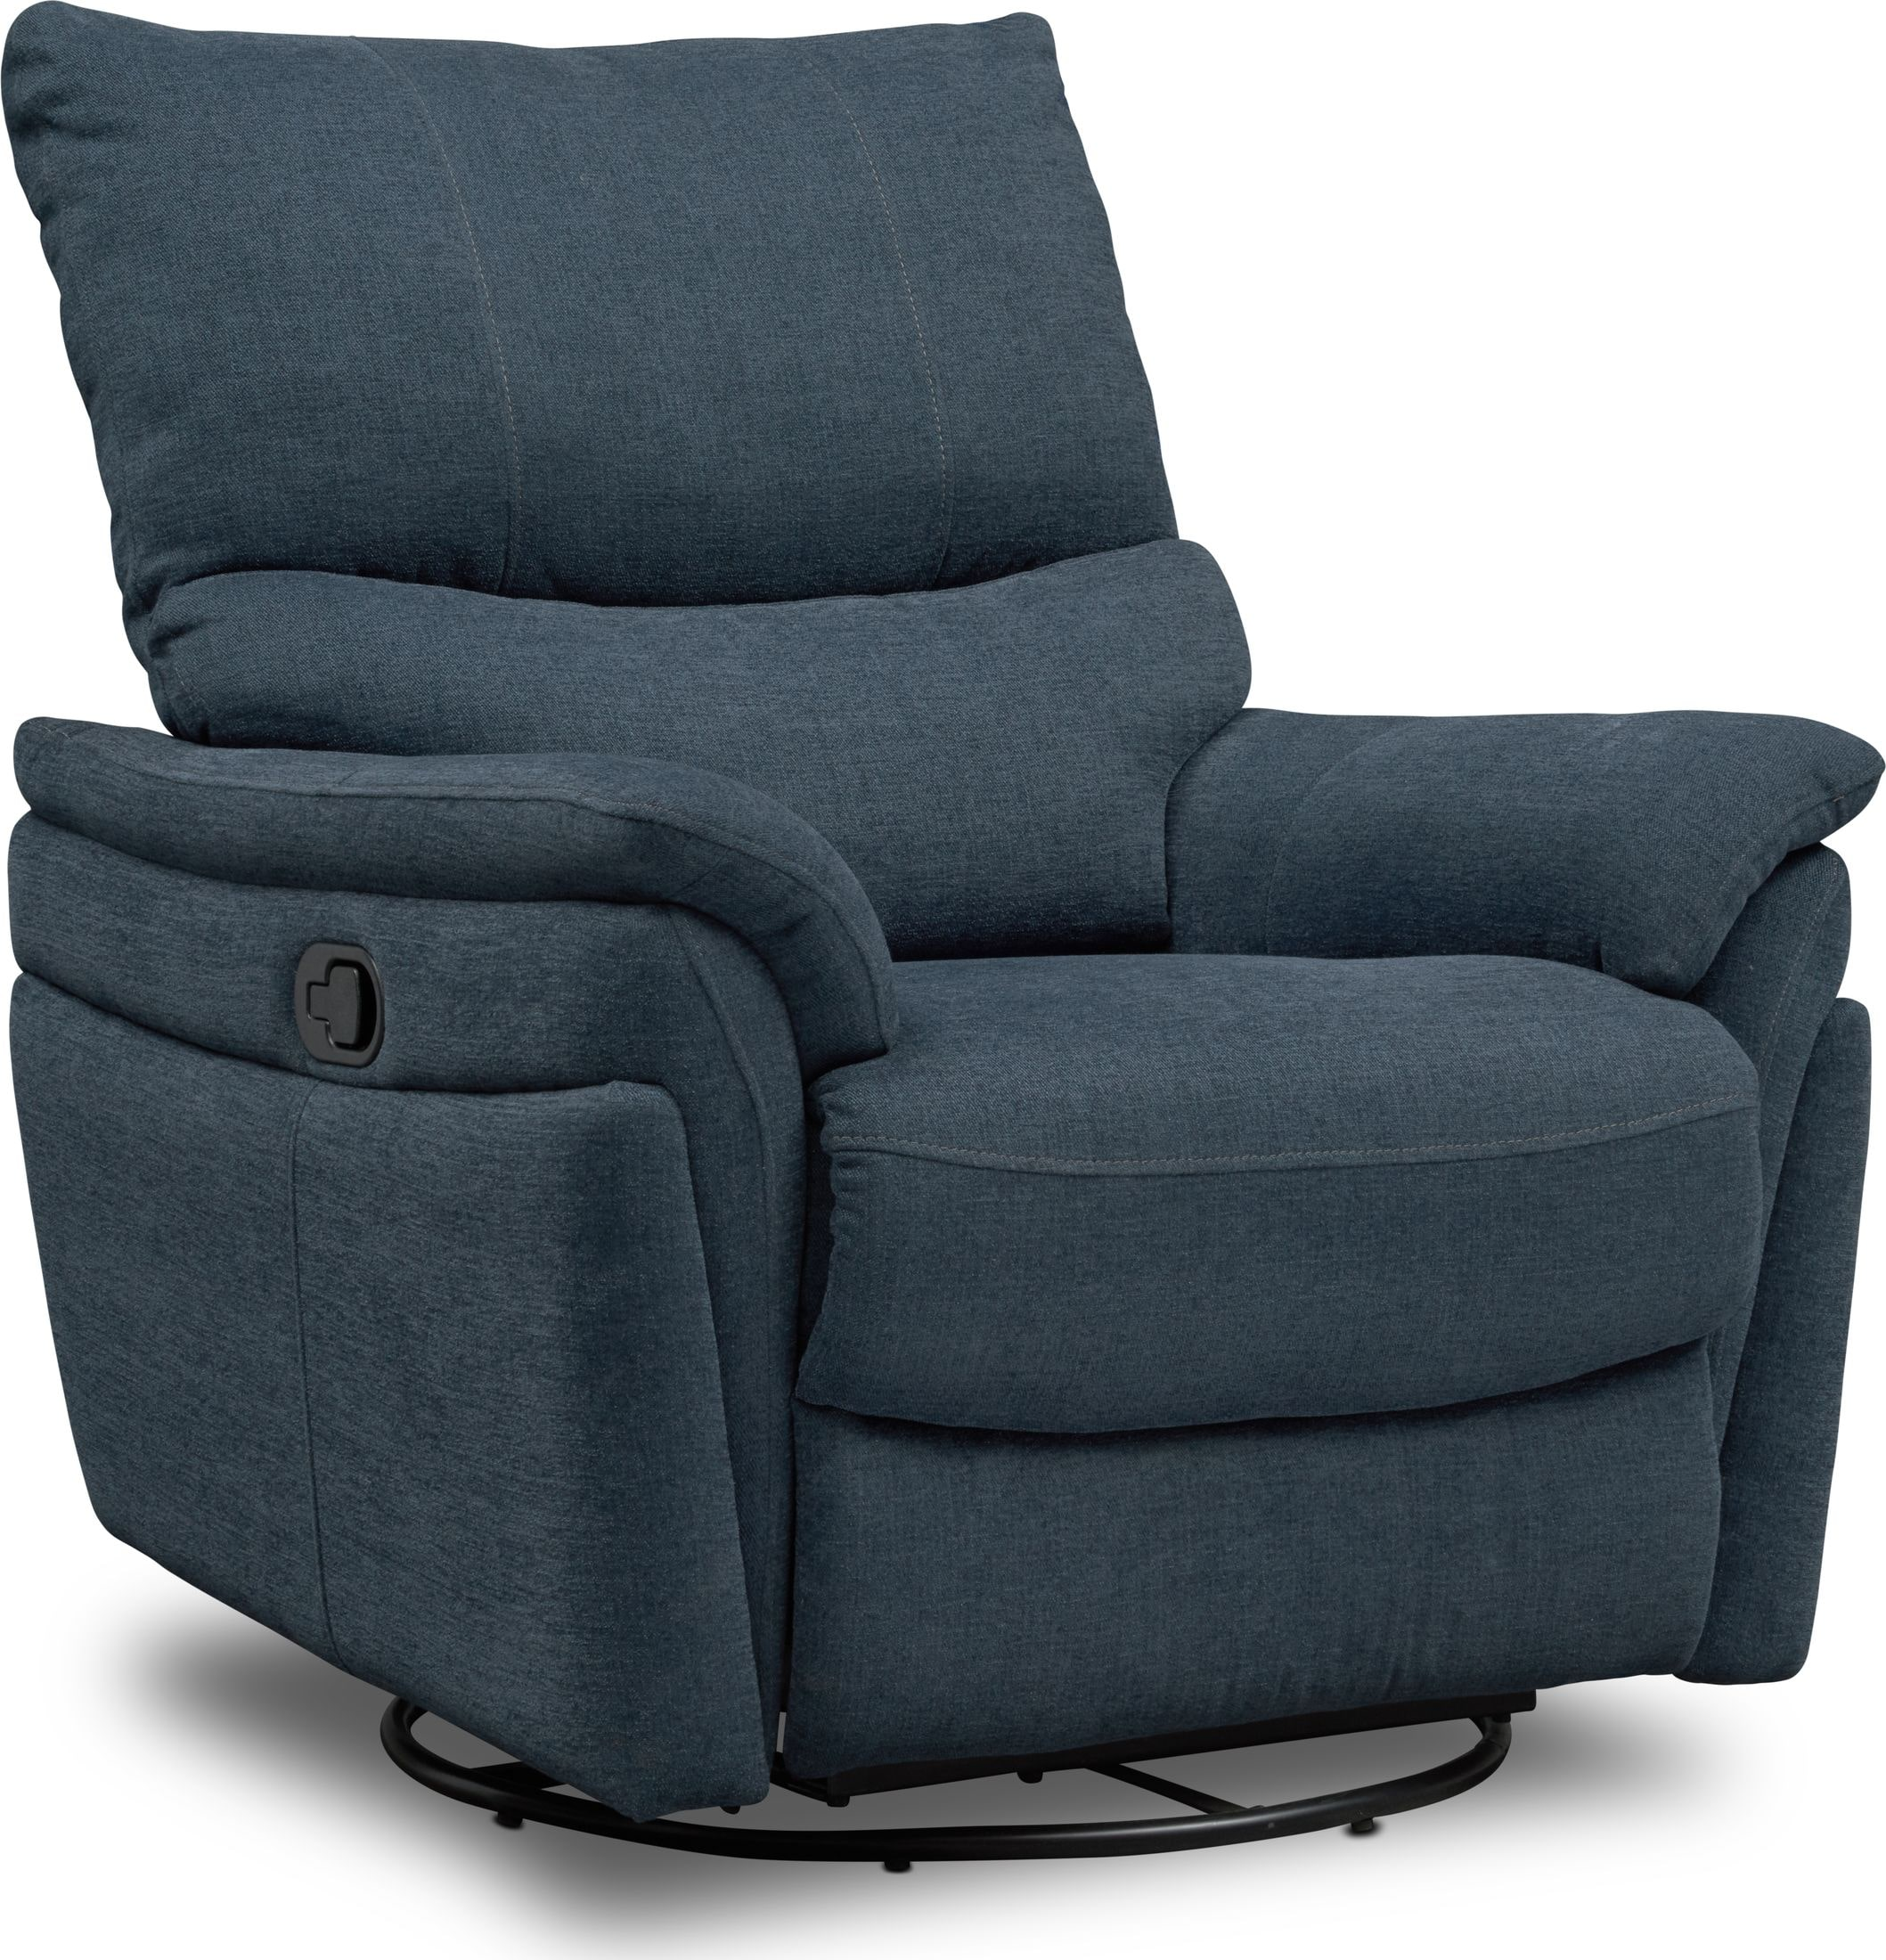 Living Room Furniture - Maddox Manual Swivel Recliner